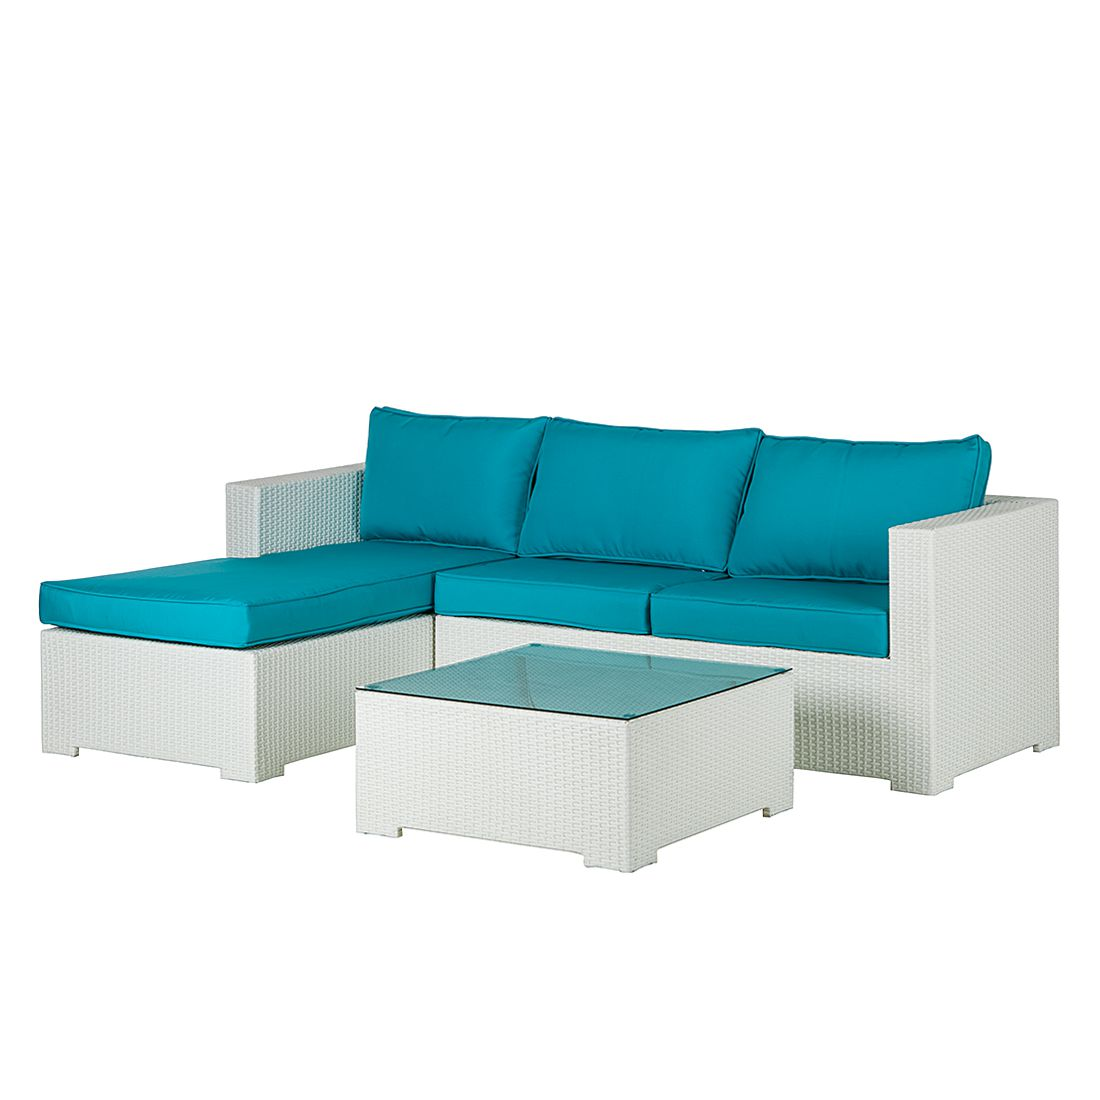 Polyrattan Lounge Set Polyrattan Lounge Set Suppliers And Lounge Sitzgruppe White Comfort 3 Teilig Polyrattan